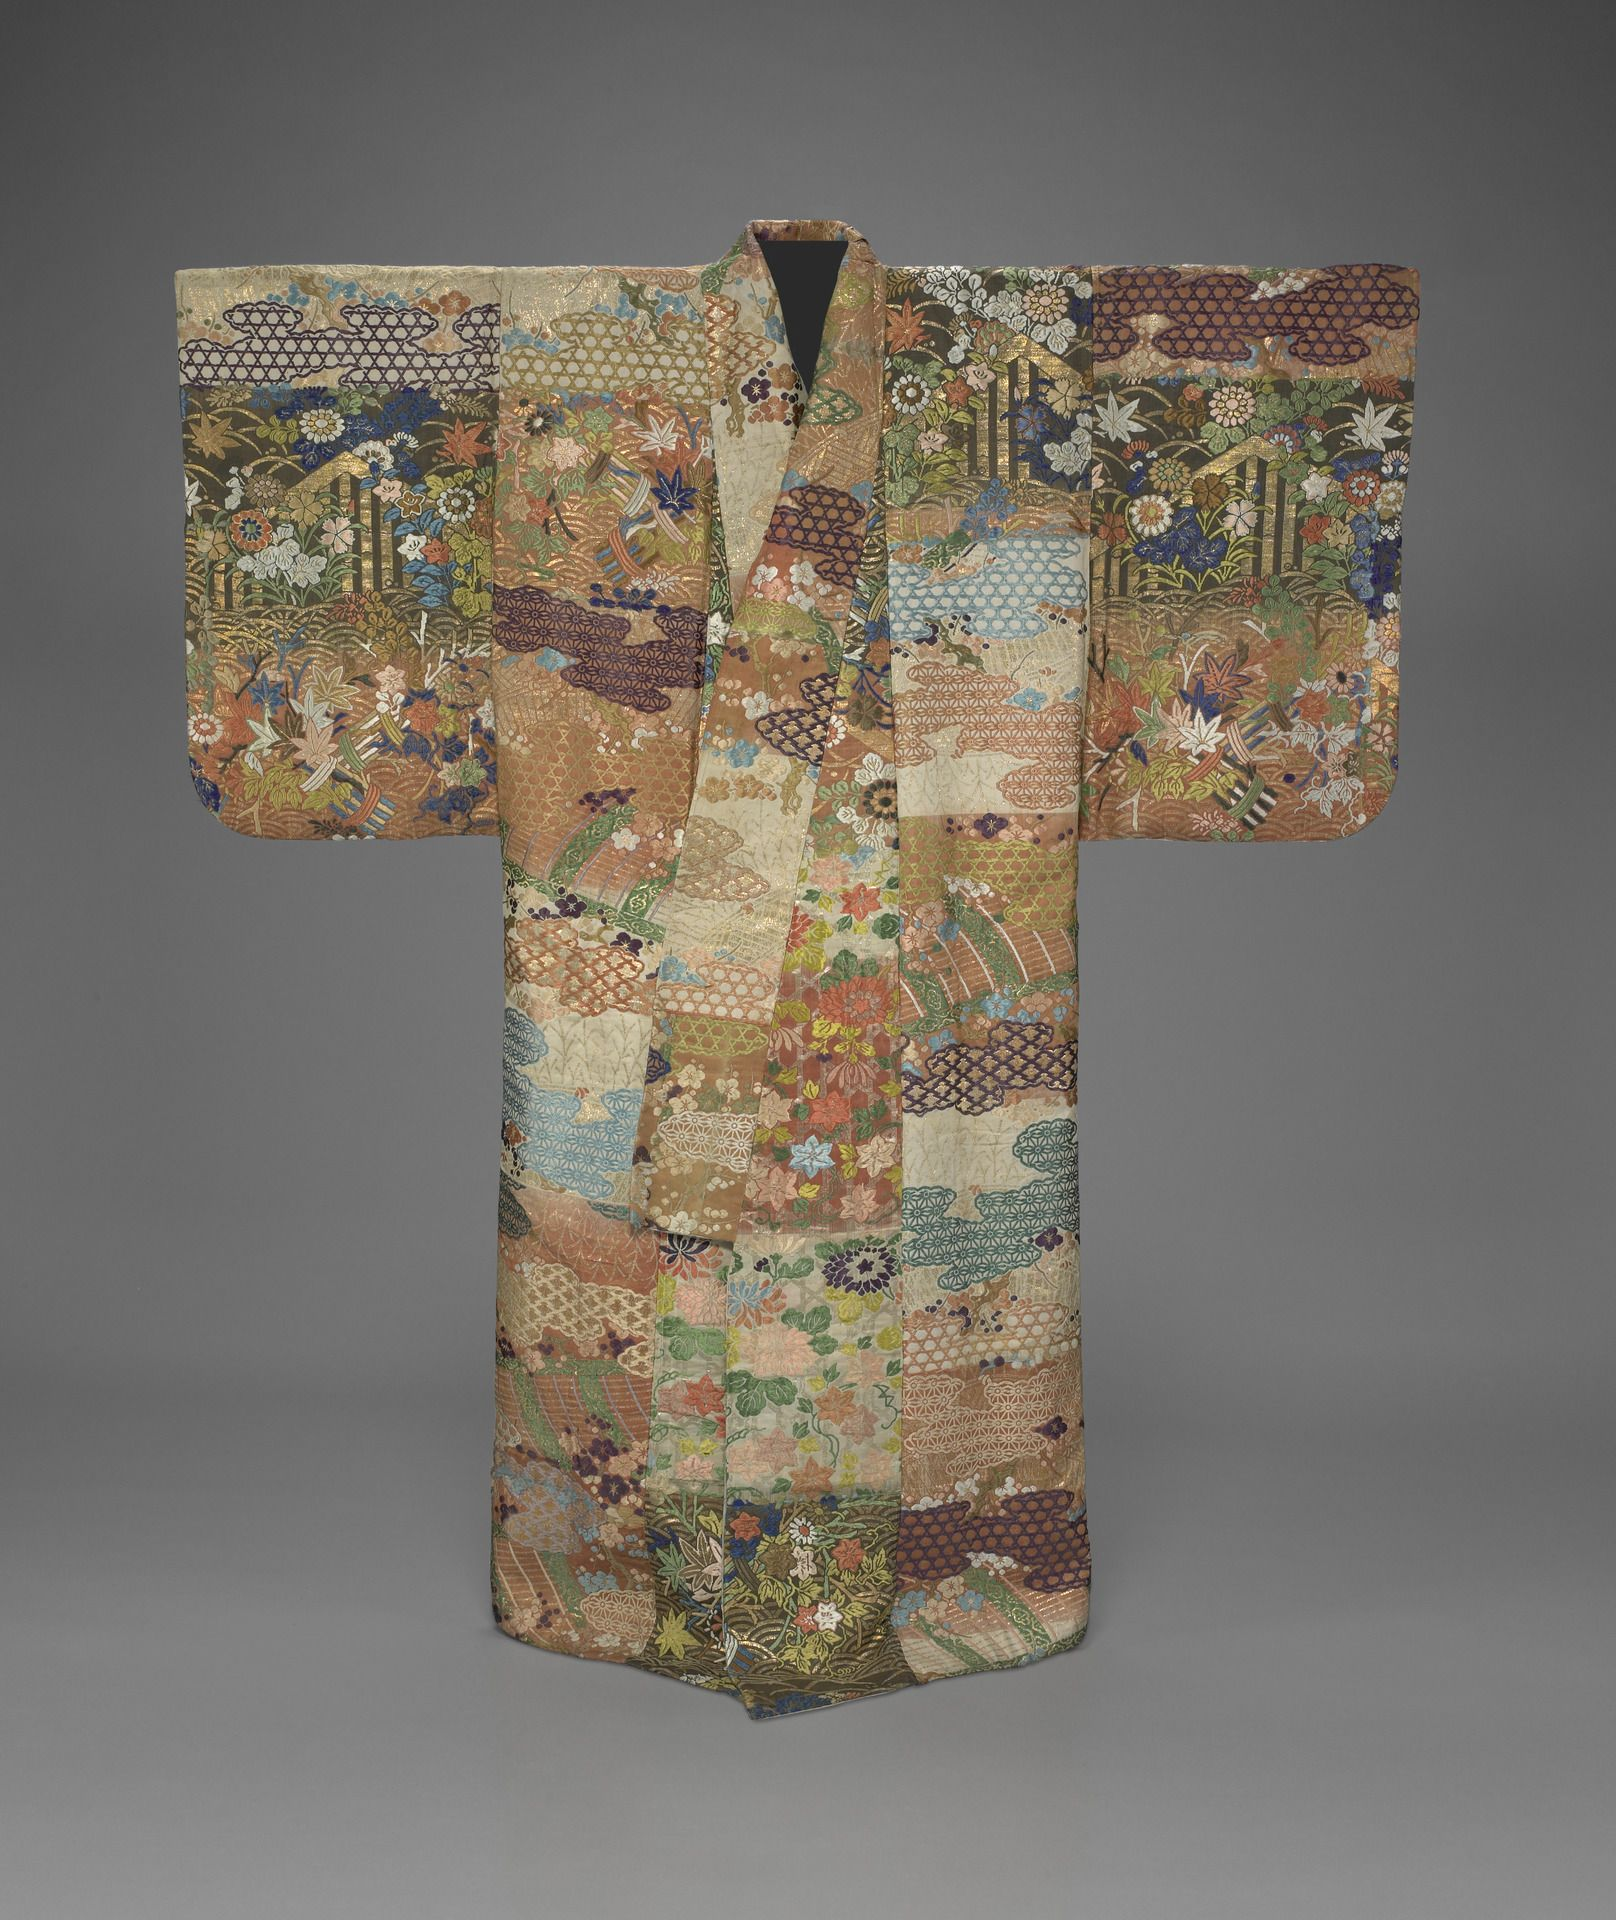 Robe De Chambre Japonaise Noh Robe 18th Century Compound Twill Brocade (karaori